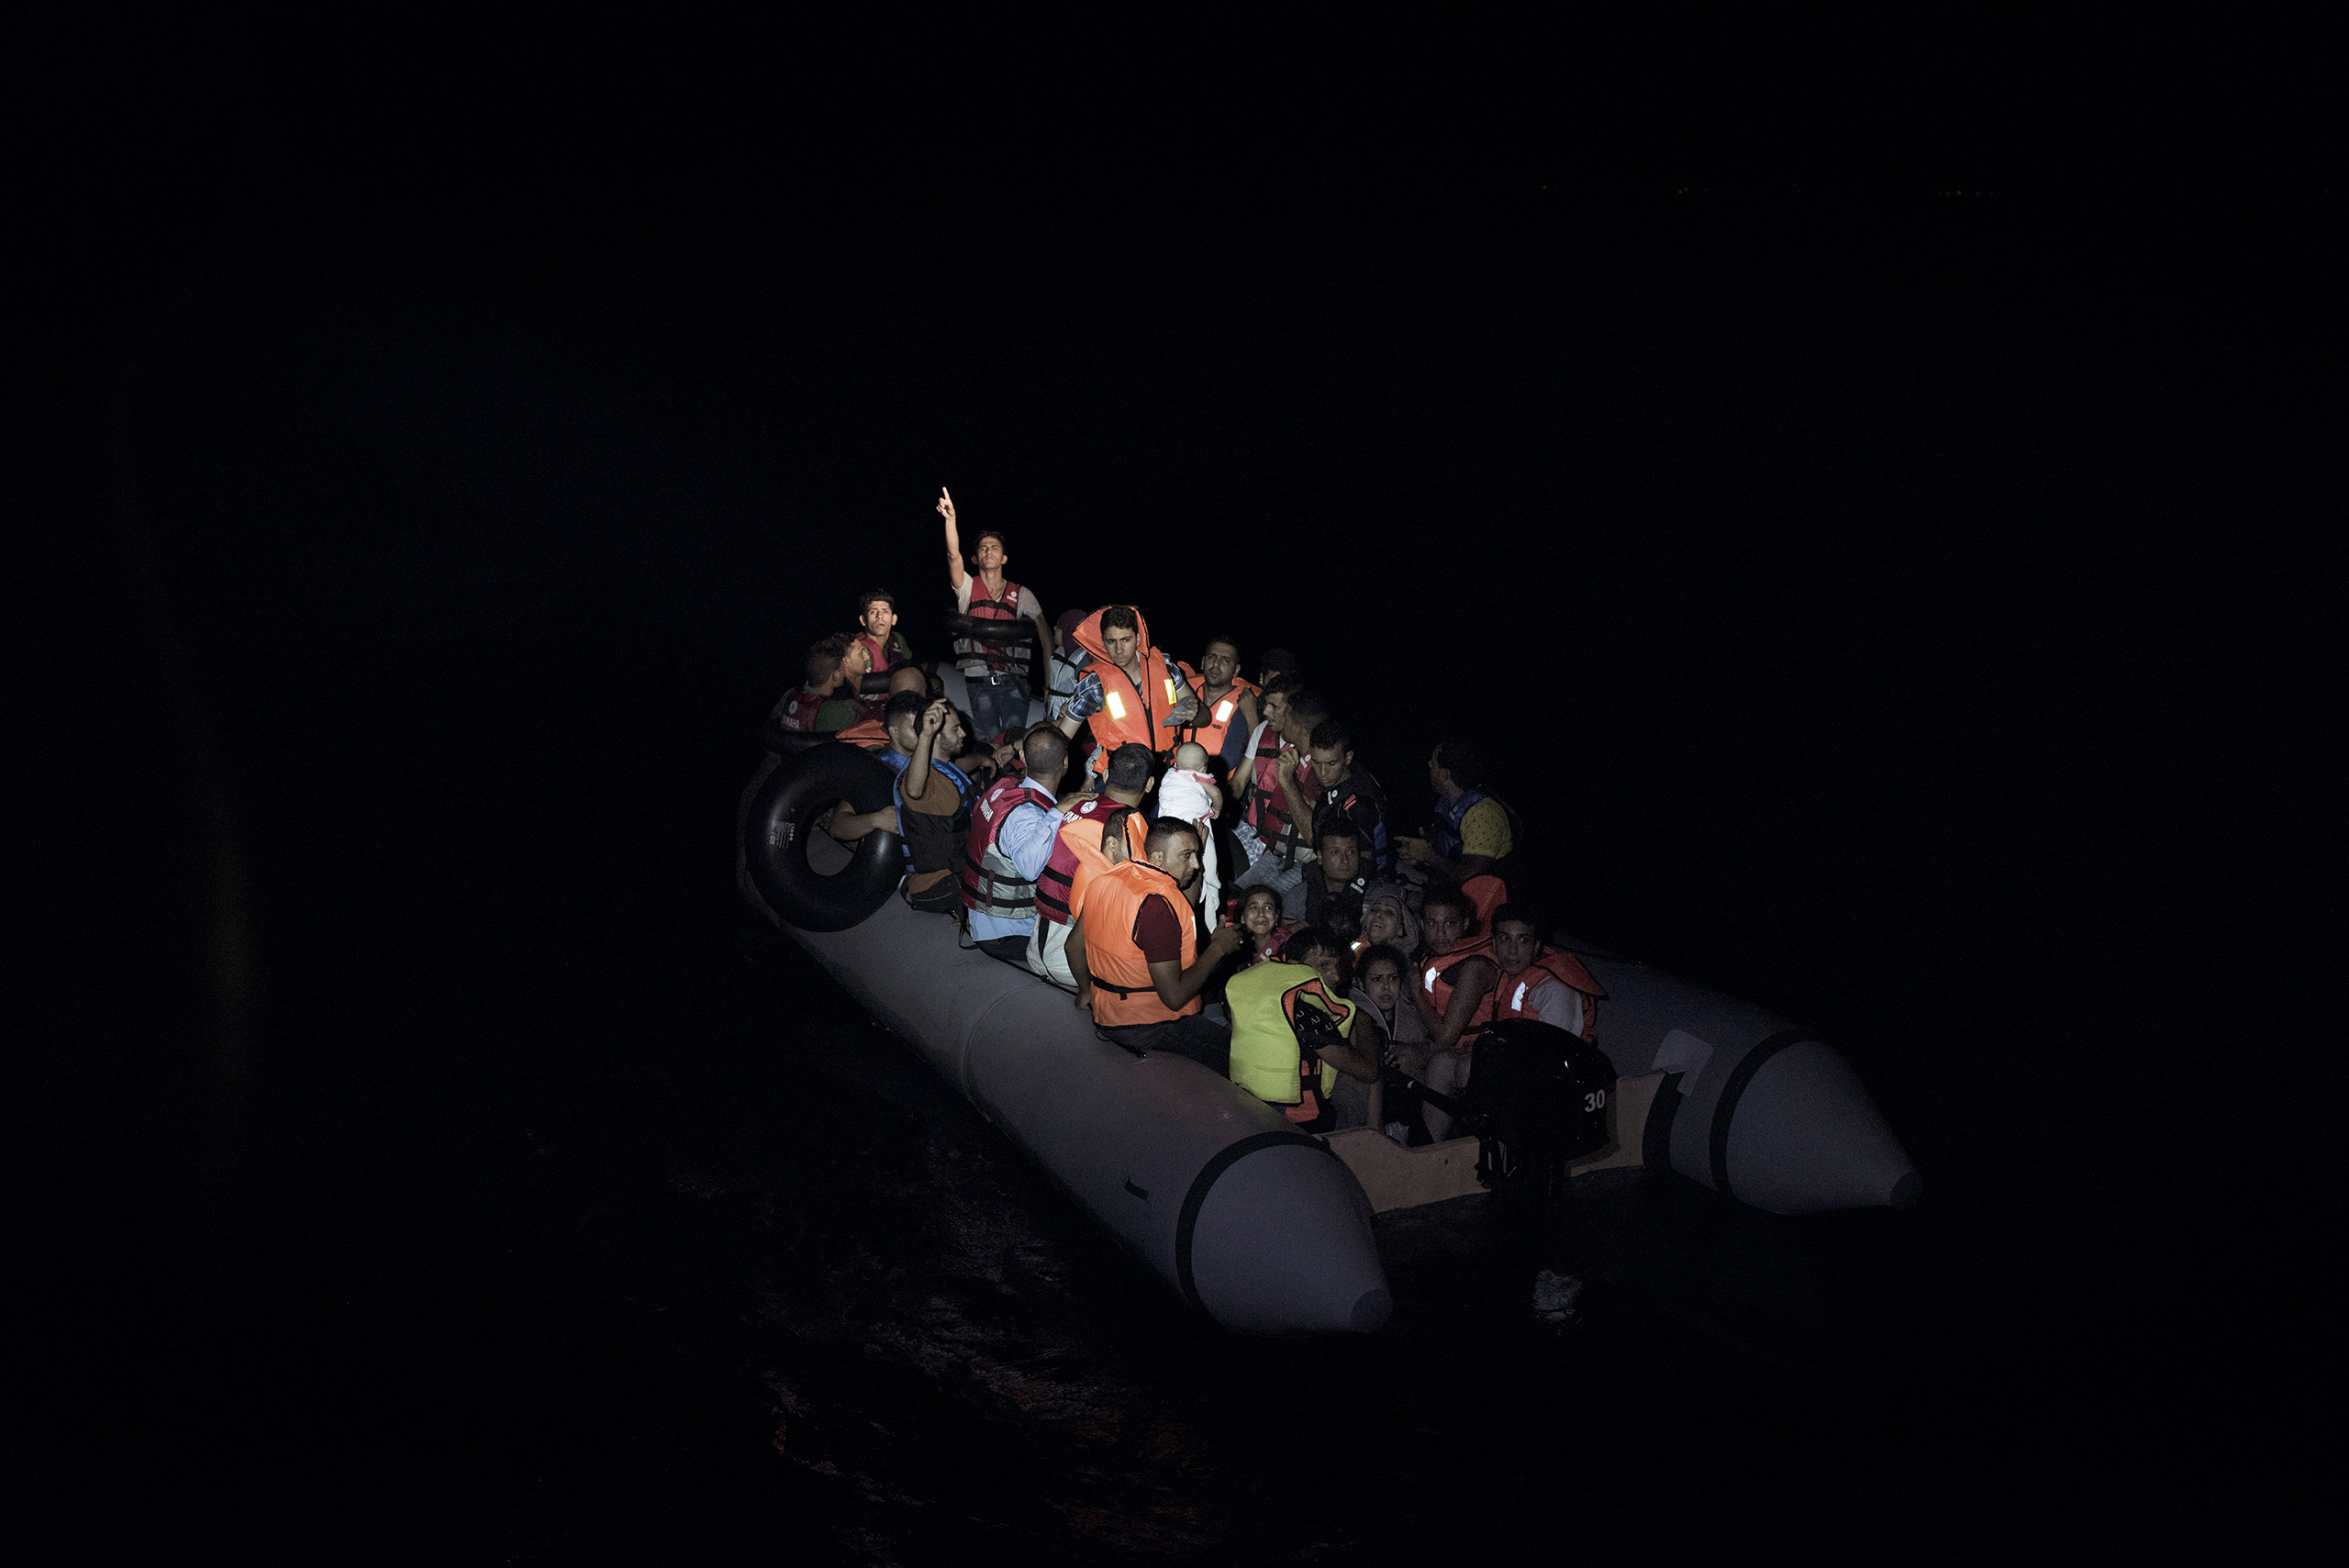 A boat full of migrants is illuminated by the flash lights of Greek coast guards who have come to rescue them from the waters near the Greek-Turkish border. Sept. 7, 2015.